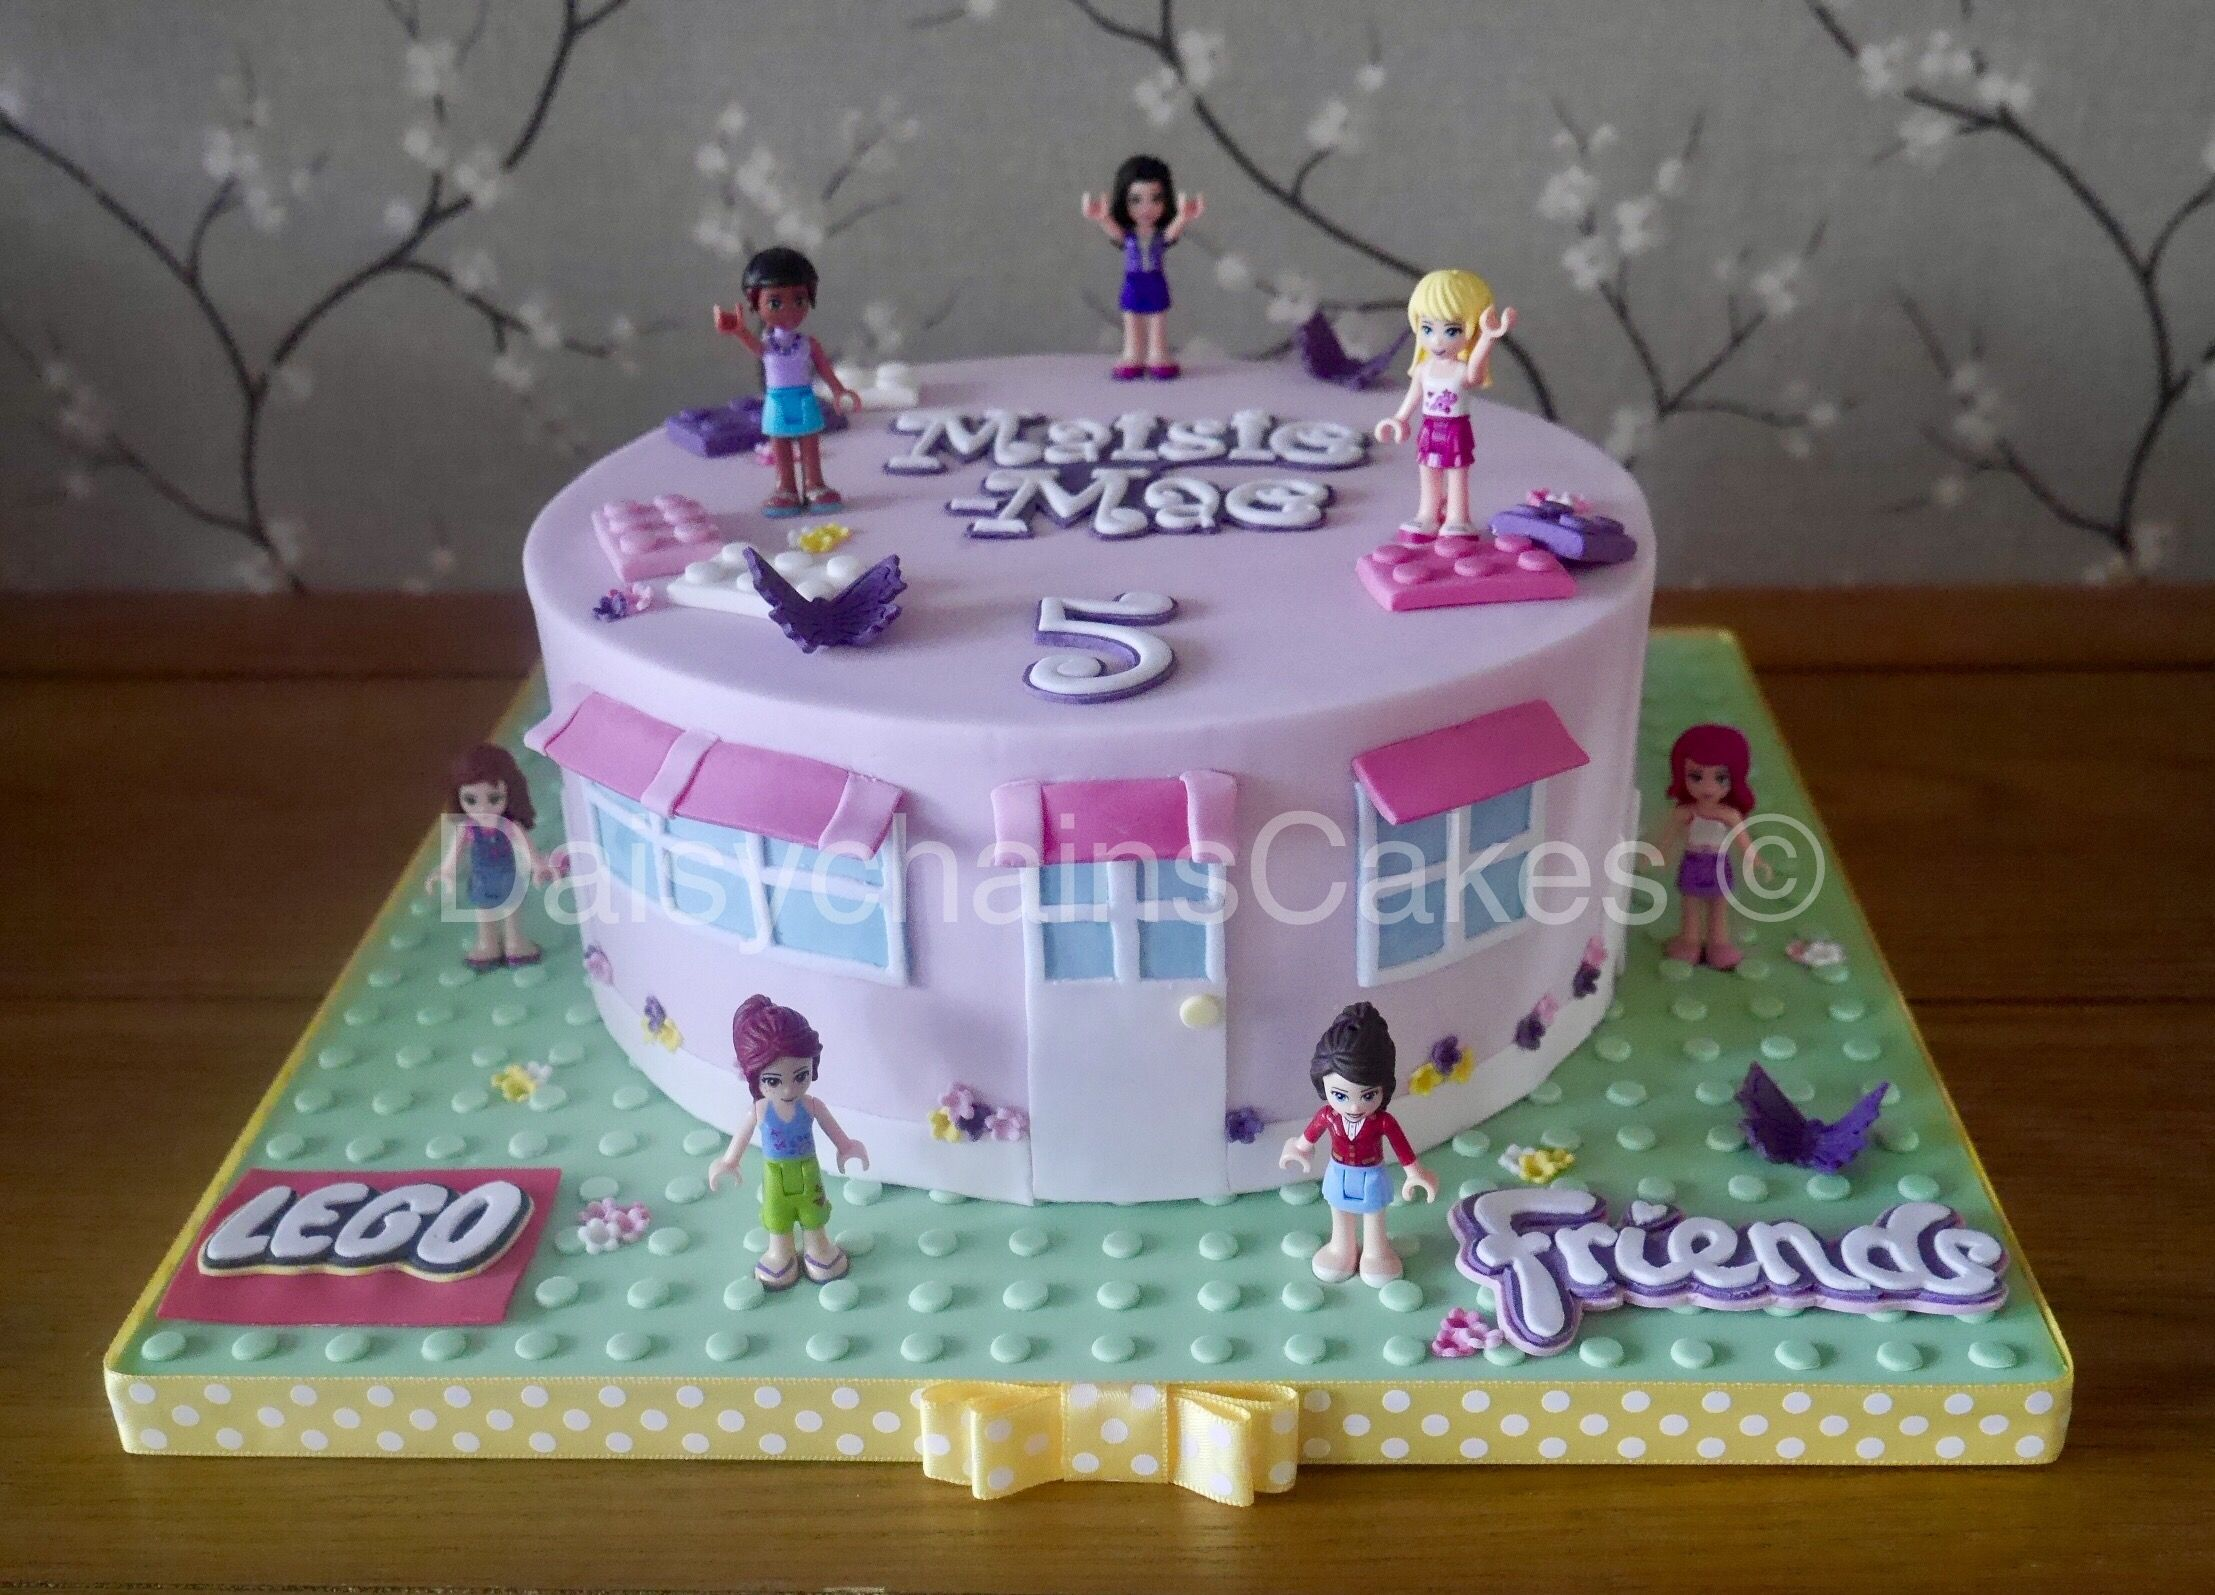 Lego Friends Cake With Images Lego Friends Cake Friends Birthday Cake Lego Friends Birthday